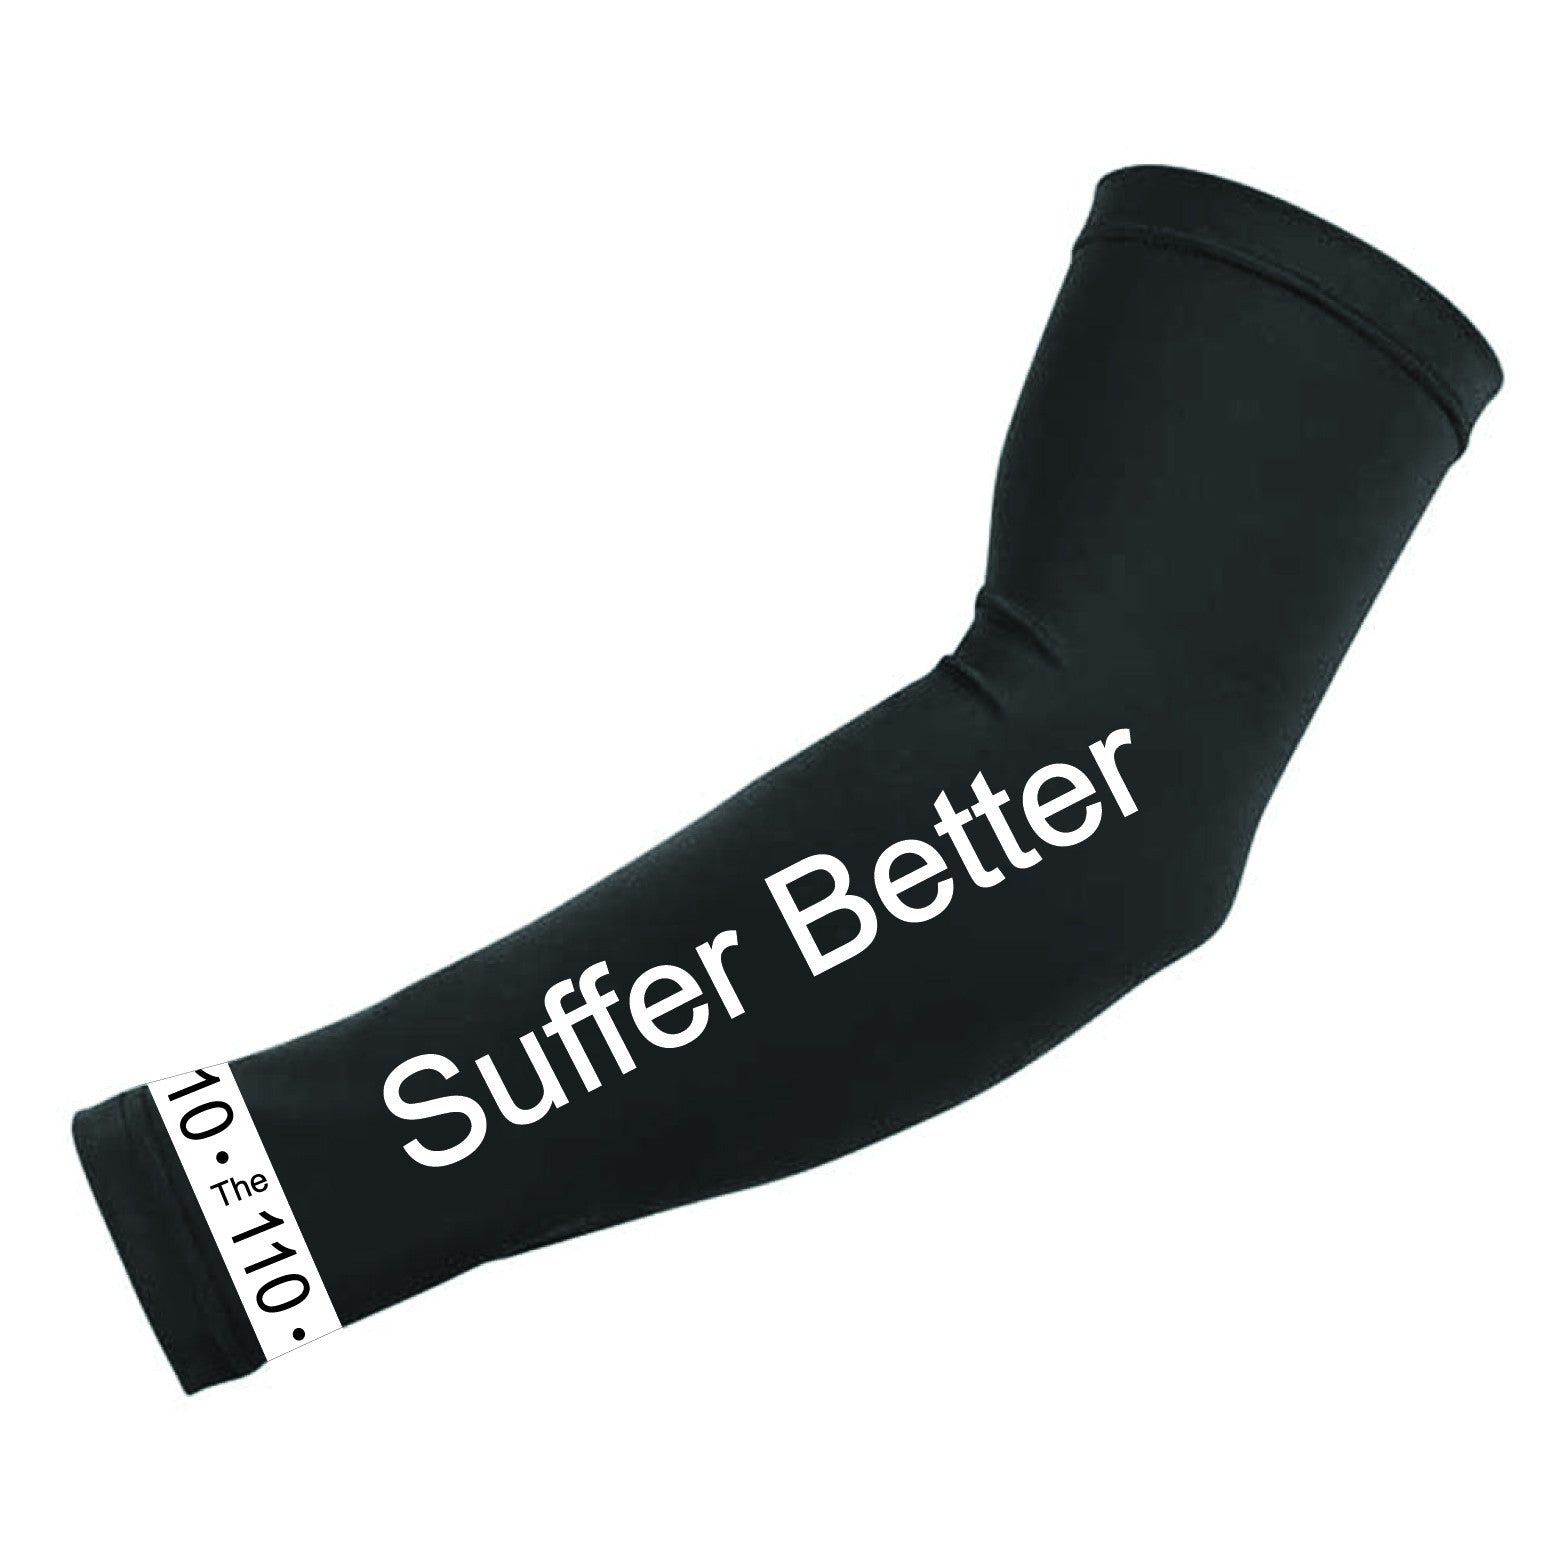 Suffer Better Arm Warmers